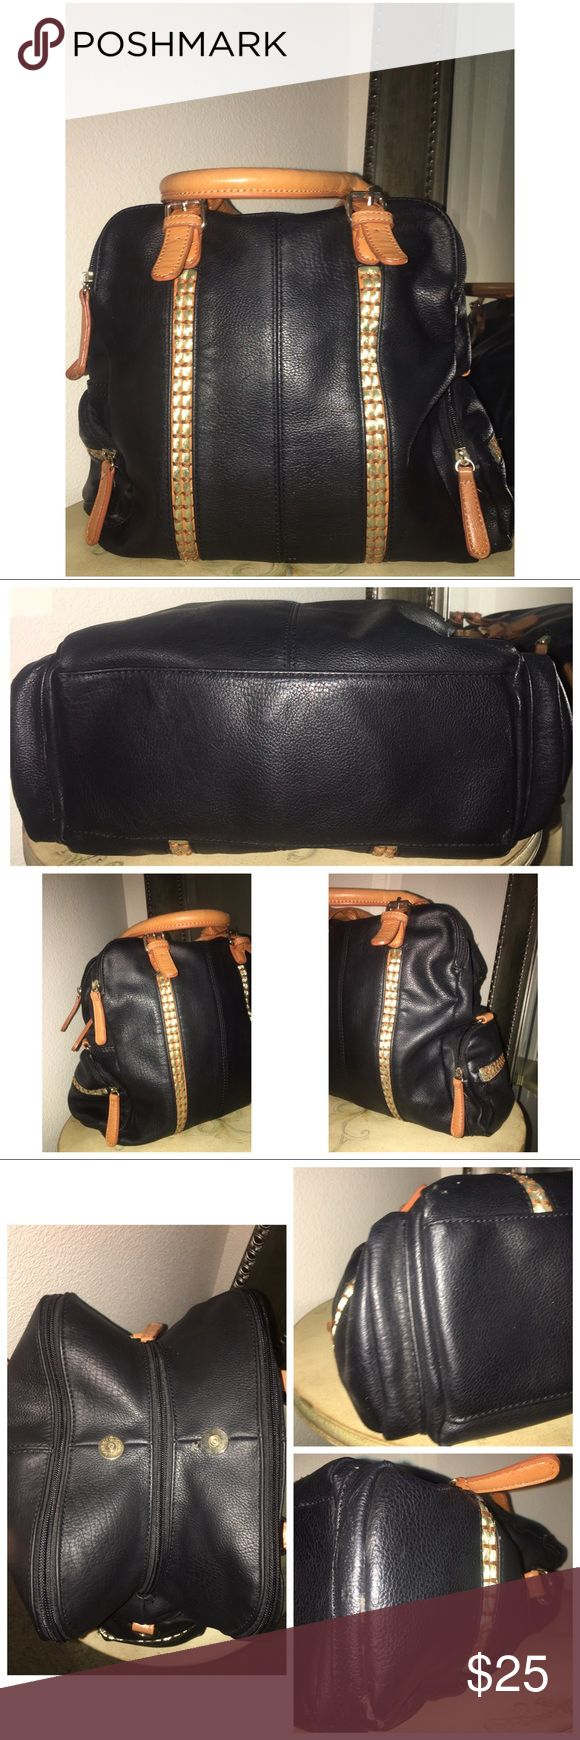 """Big Buddha Handbag Pre•loved Big Buddha 3 compartment bag Black Has 3 zipper compartments  Snap button closure at the top (slight peeling next to the button) not noticeable when the bag is closed Interior is clean Handles are in excellent condition  Corners are slightly scuffed Measures approx; Length 12.5"""" x Height 12"""" x Width 5"""" 6417F Big Buddha Bags"""